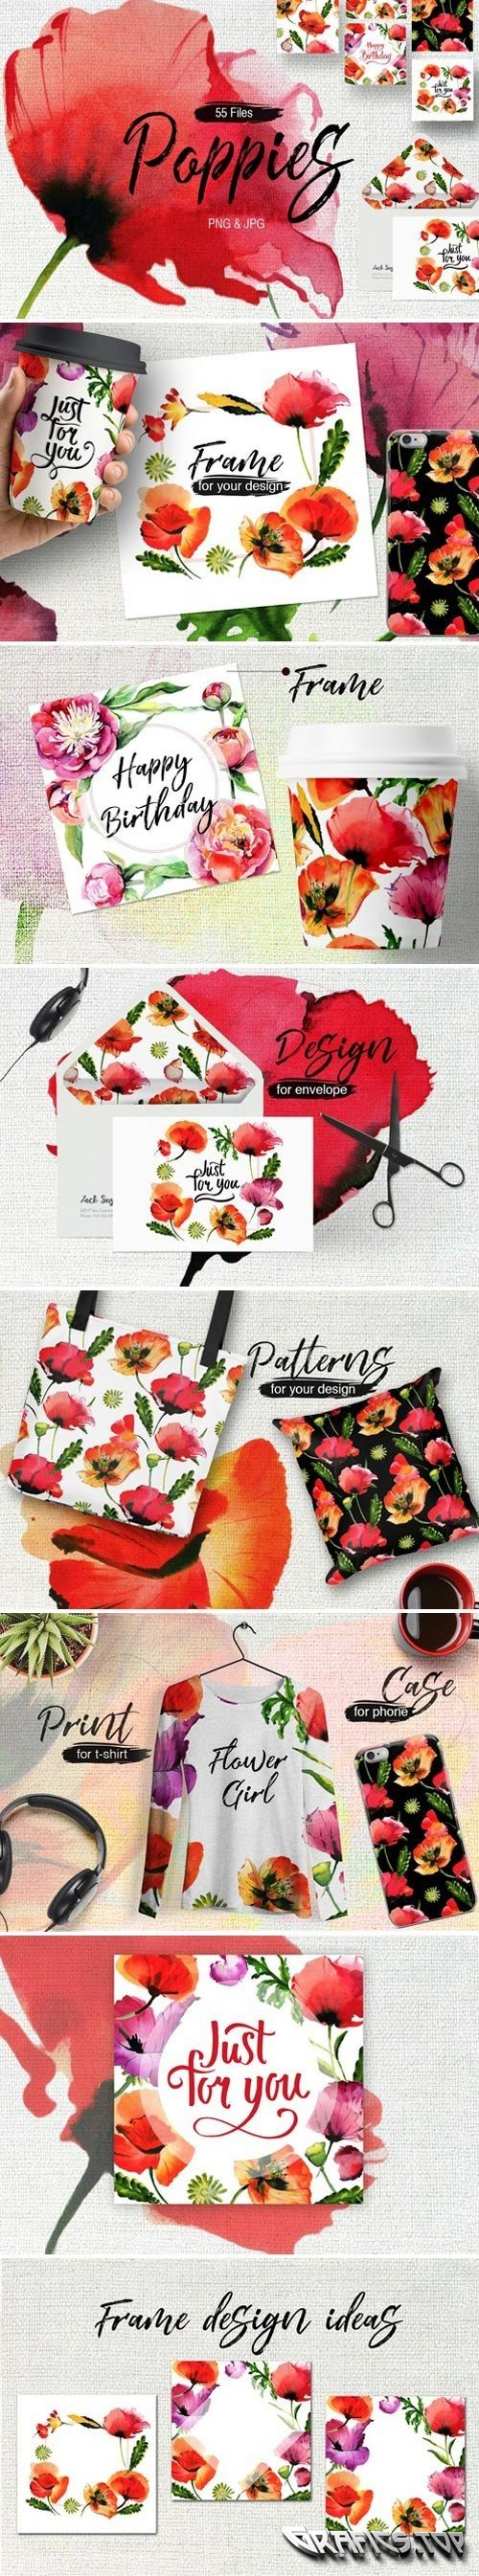 Poppy flowers PNG watercolor set - 1948215